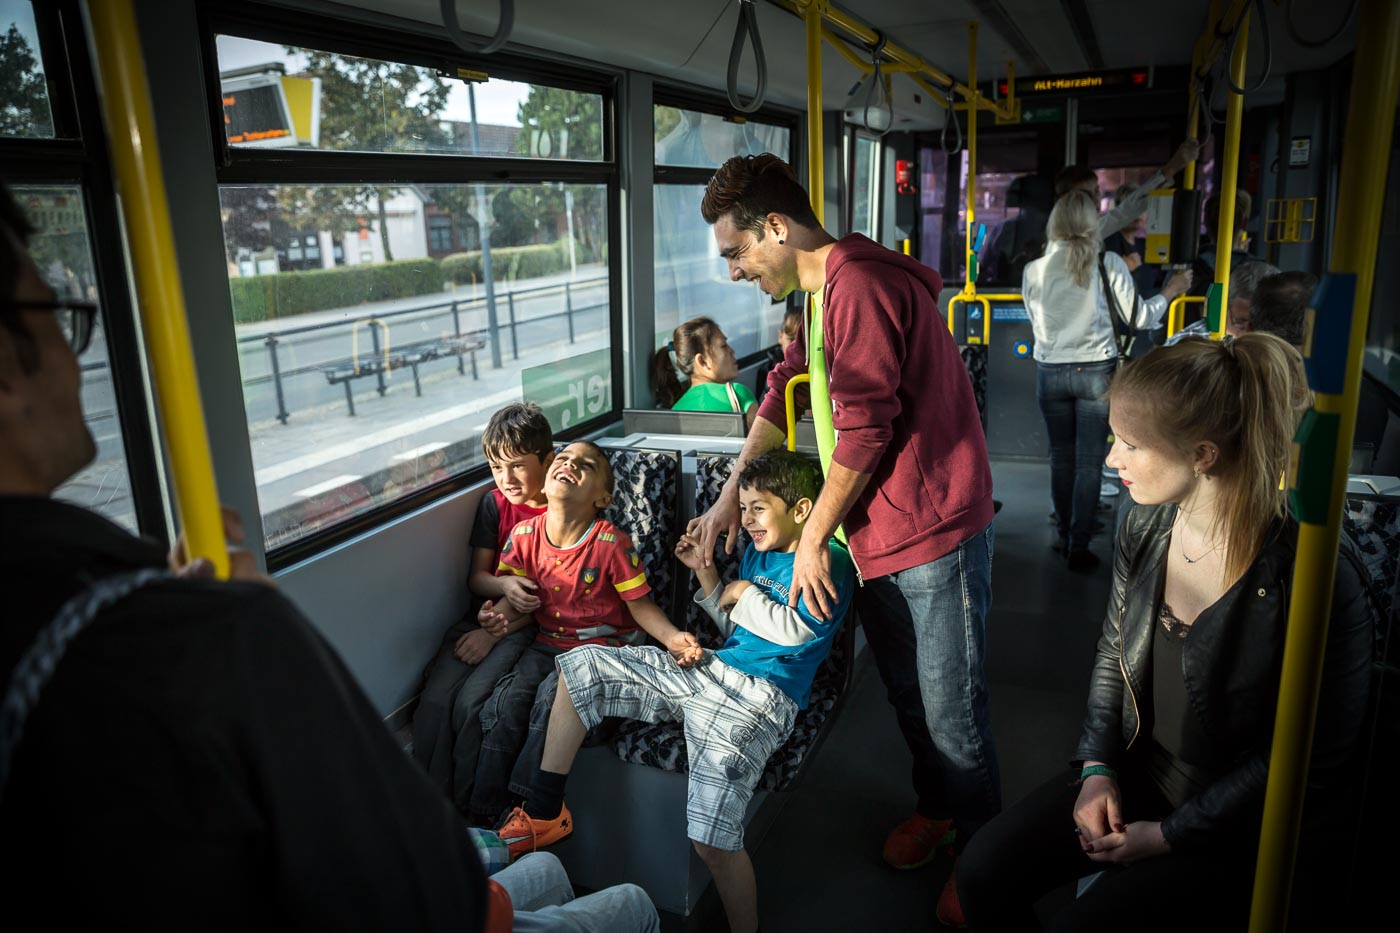 Bus Erfurt Berlin Refugees Gordon Welters Photographer